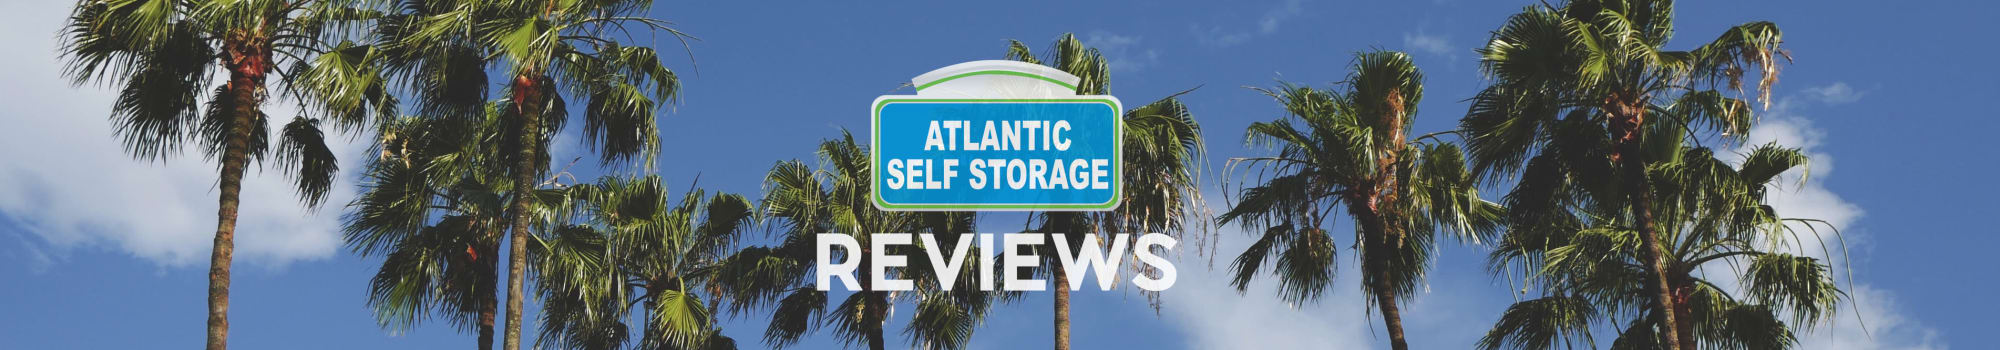 Learn more about our storage facility at Atlantic Self Storage in Jacksonville, FL